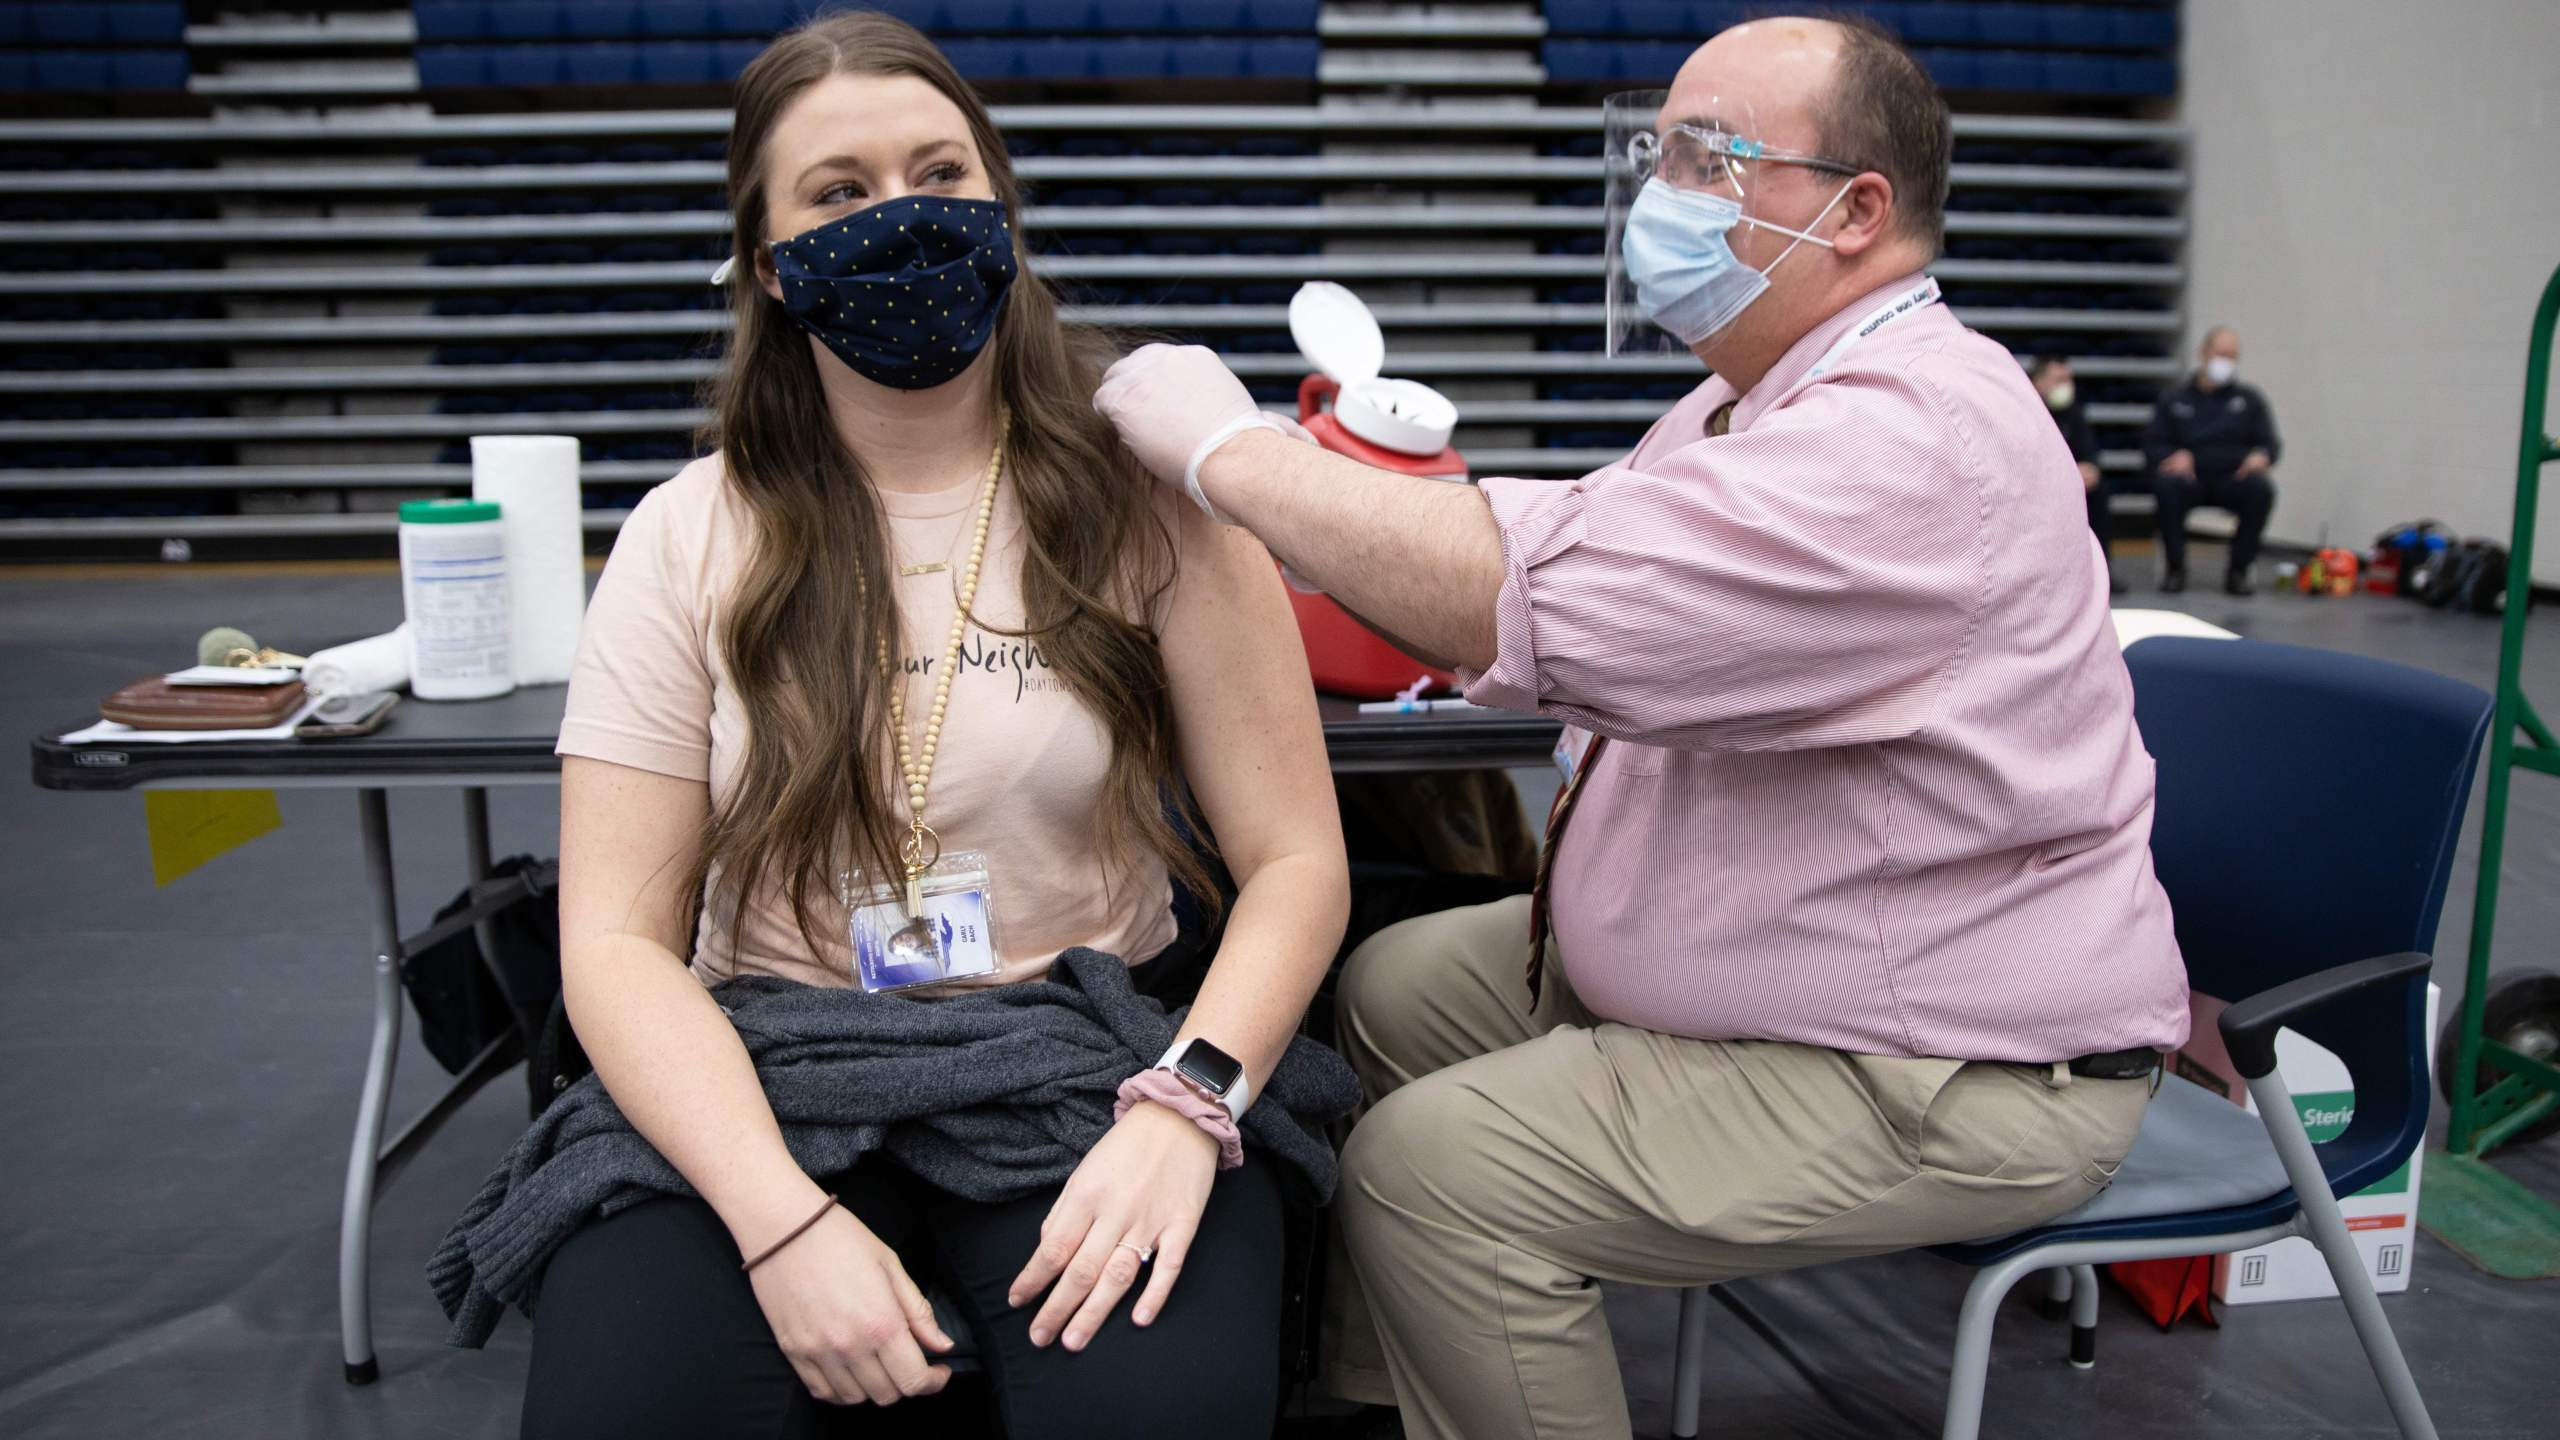 Educational staff at Kettering City Schools receive the COVID-19 vaccine as a part of Ohio's Phase 1B vaccine distribution in Dayton, Ohio, on Feb. 10, 2021. (MEGAN JELINGER/AFP via Getty Images)